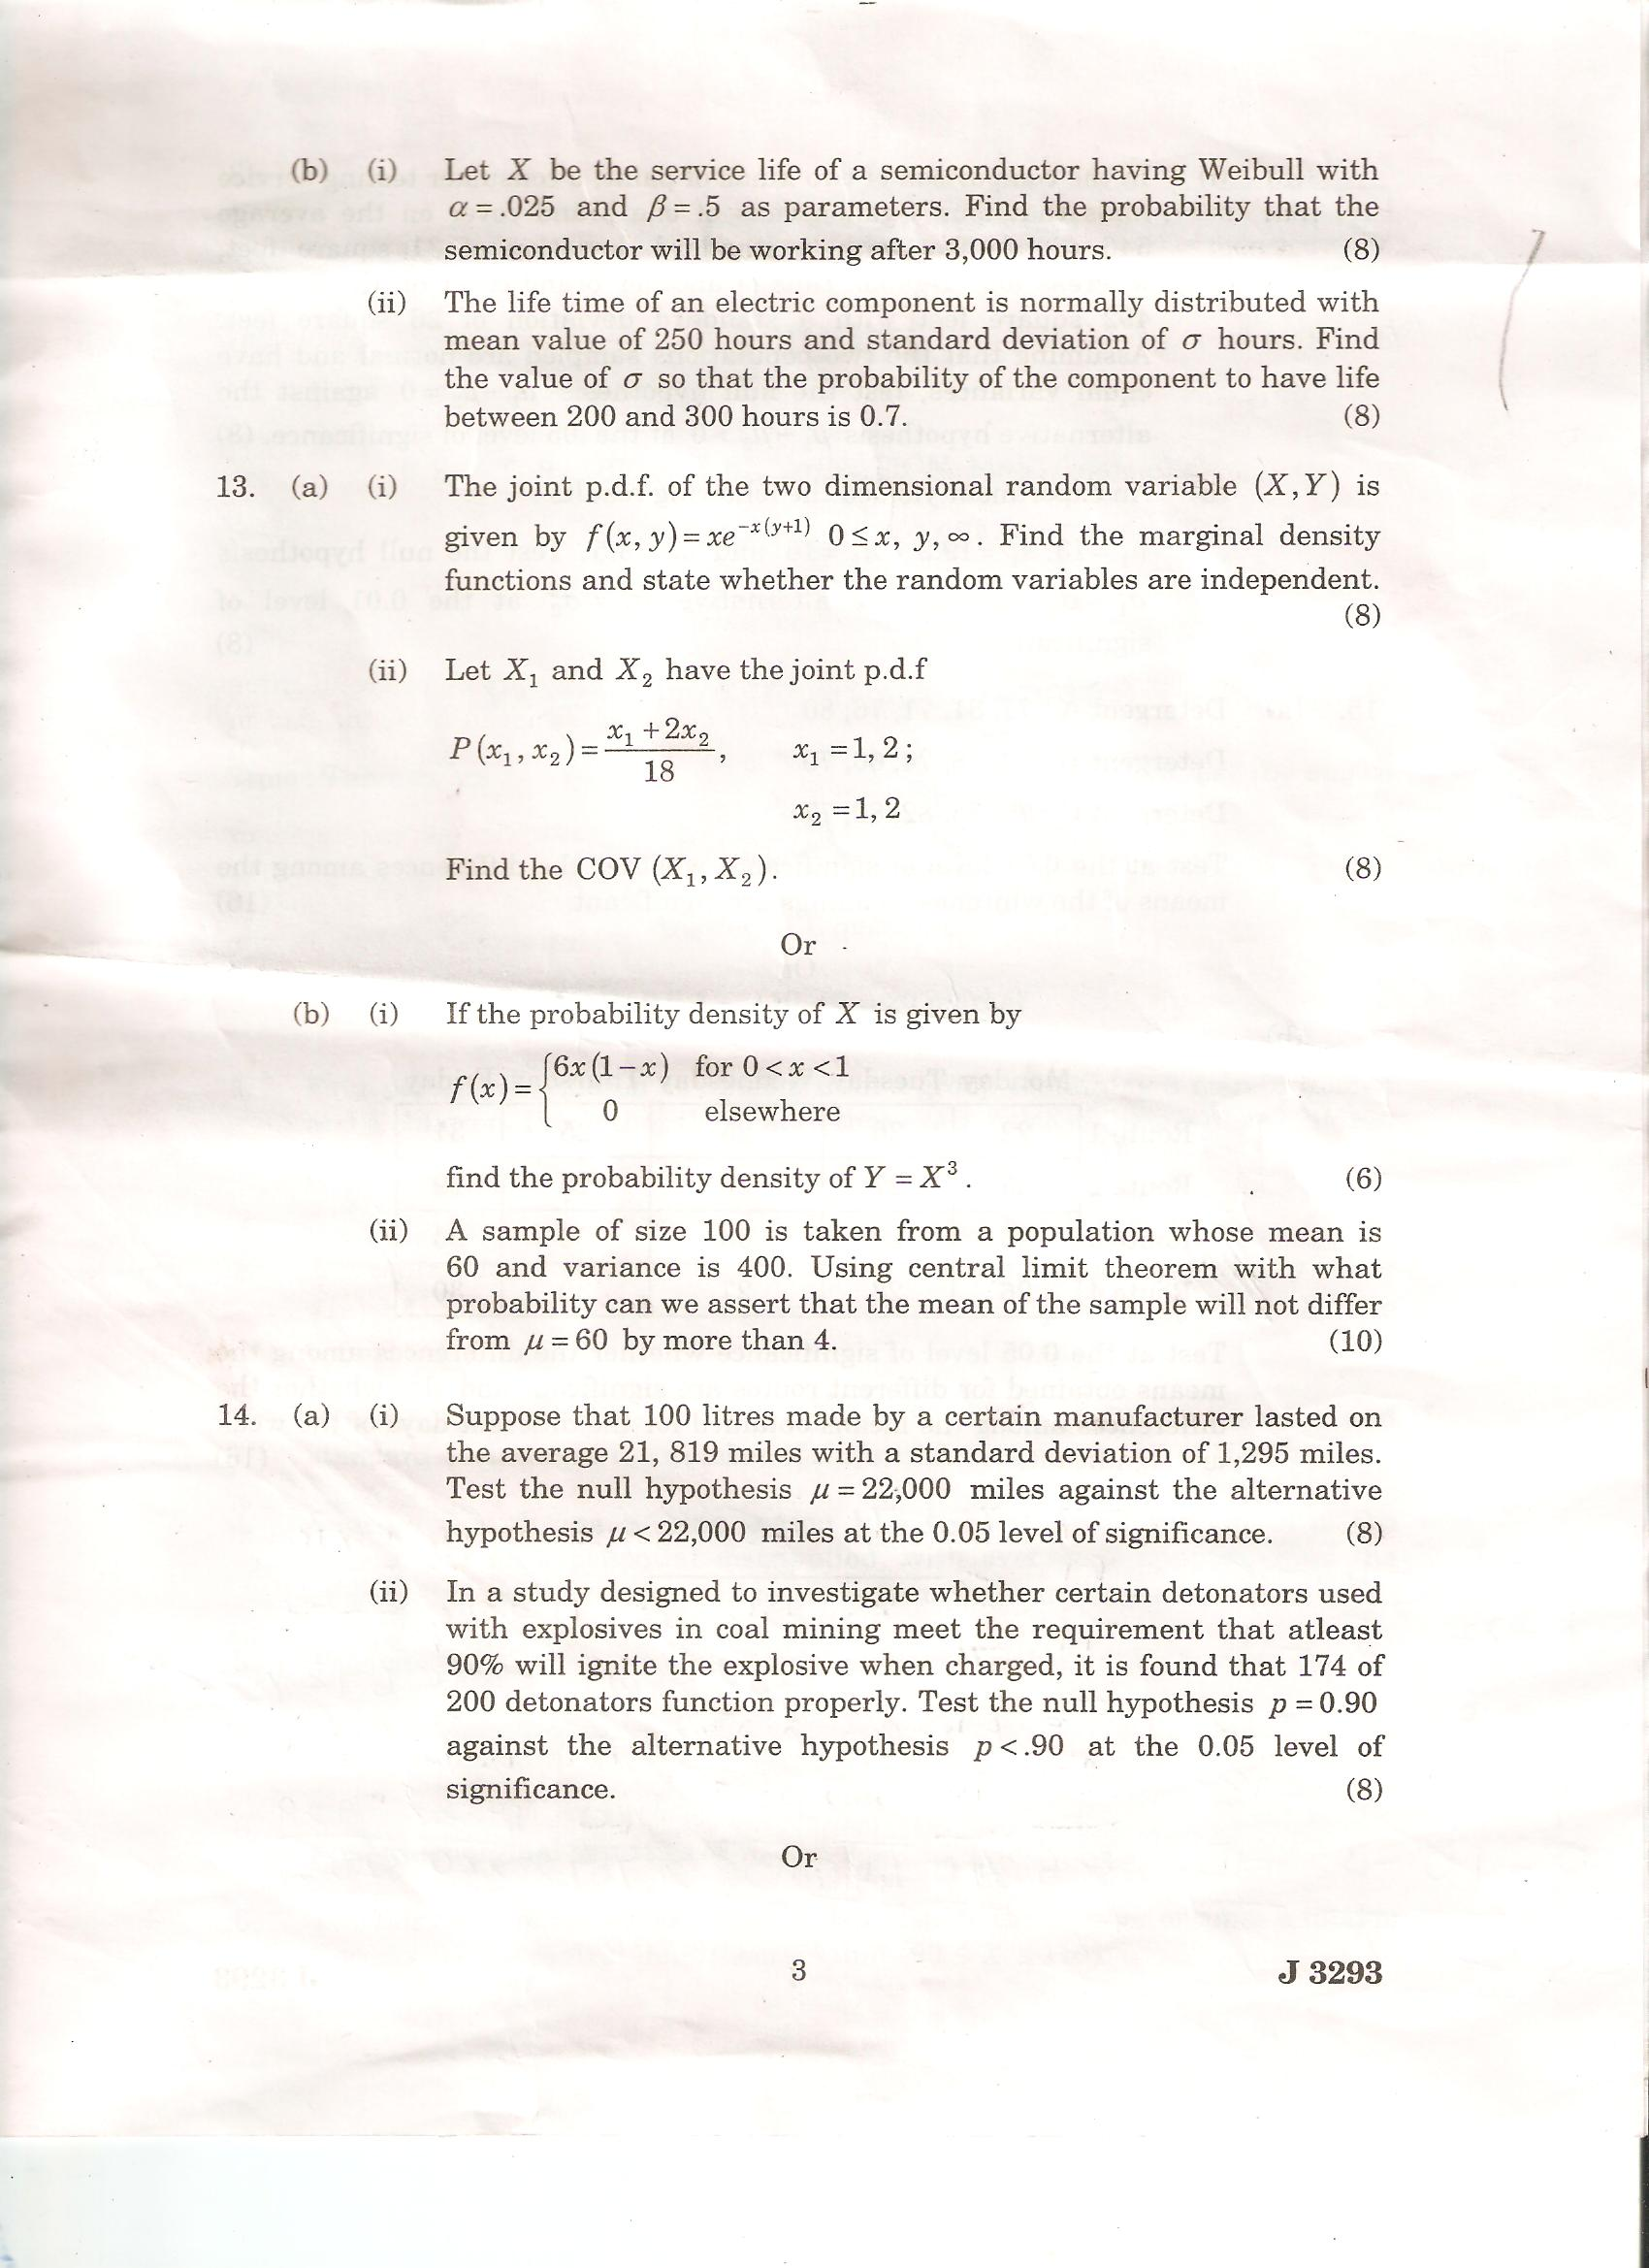 ge2022 total quality management question papers anna university Ge2022 total quality management question papers ge2022 tqm rejinpaulcom provides anna university previous year model question papers for all departments tqm 2011total quality management anna university question paperstotal quality management nov,dec2014.